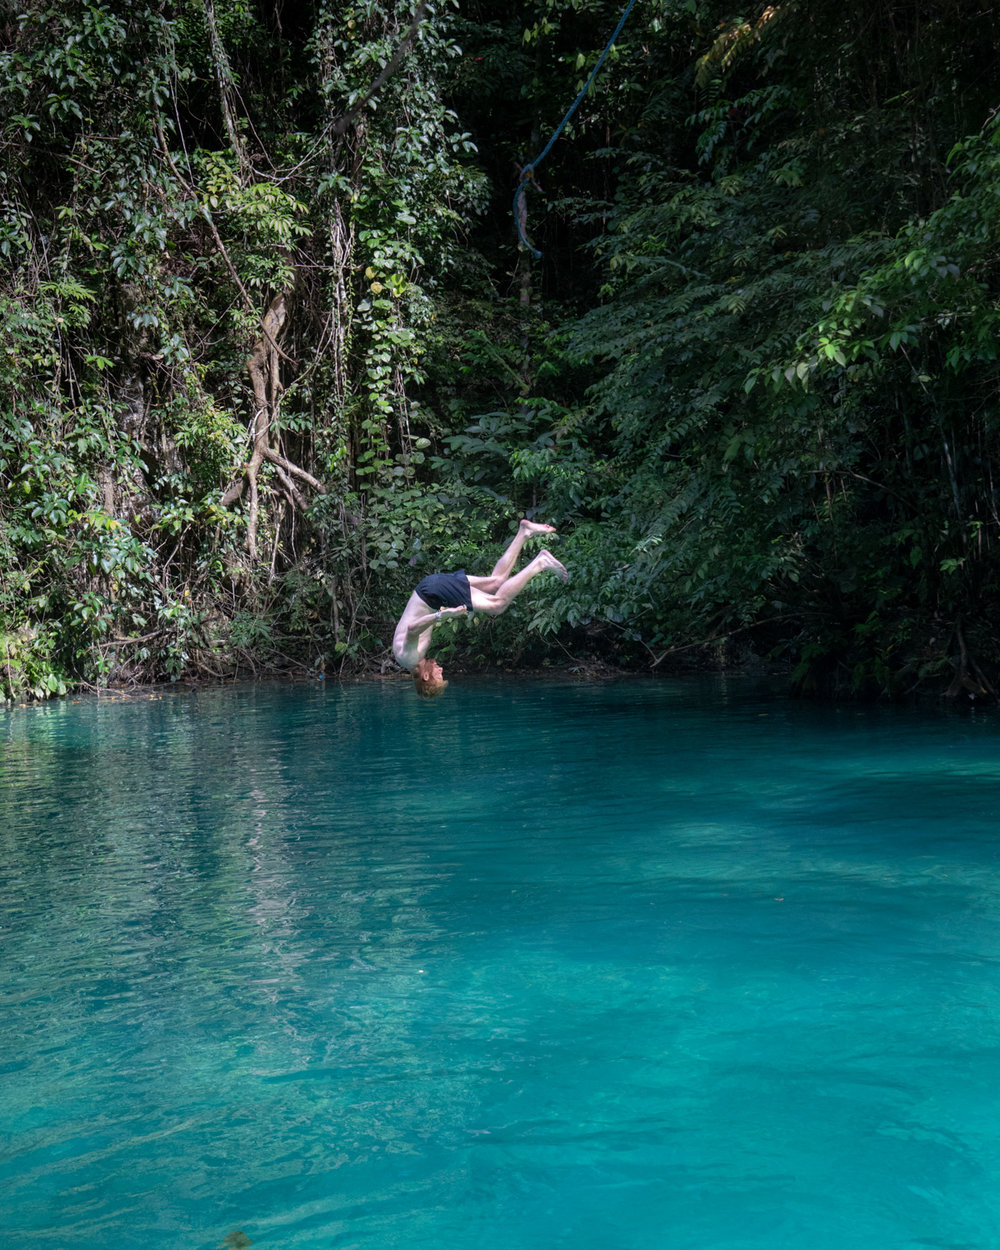 Swing jumpers at Kawasan Falls, Cebu, The Philippines